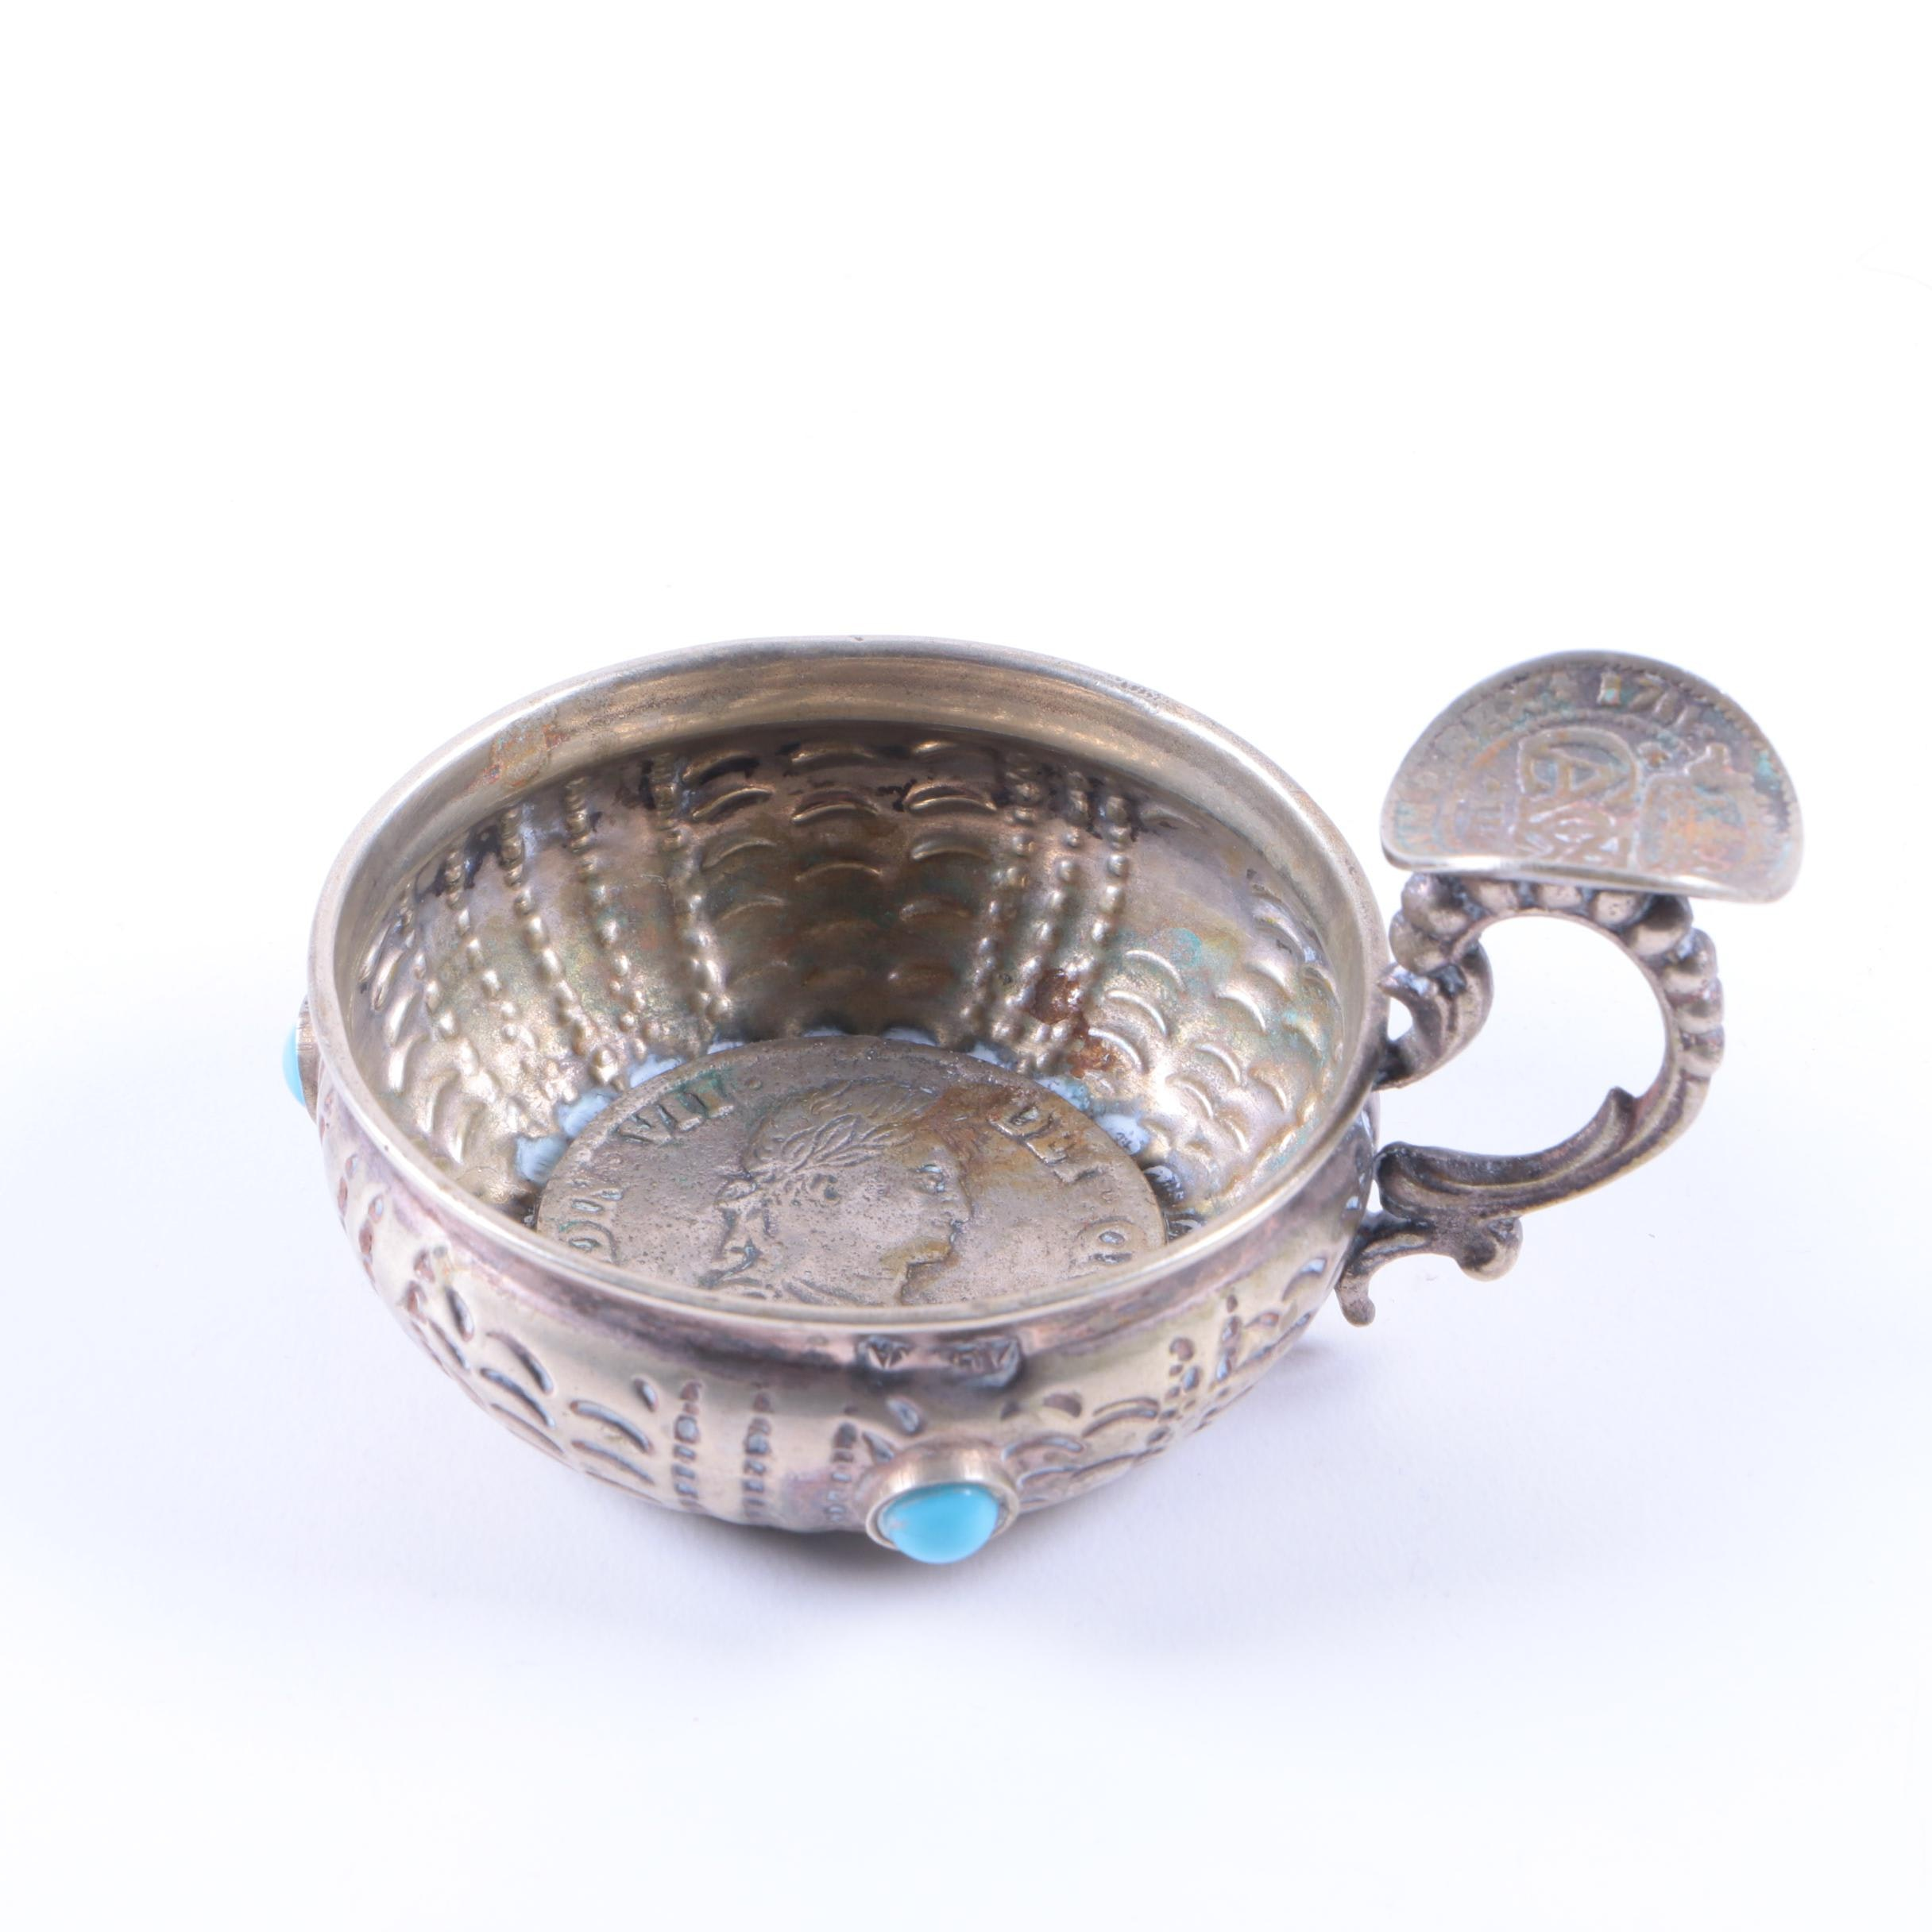 Silver-Plated 1808 Spanish Colonial Coin Tastevin with Blue Glass Cabochons